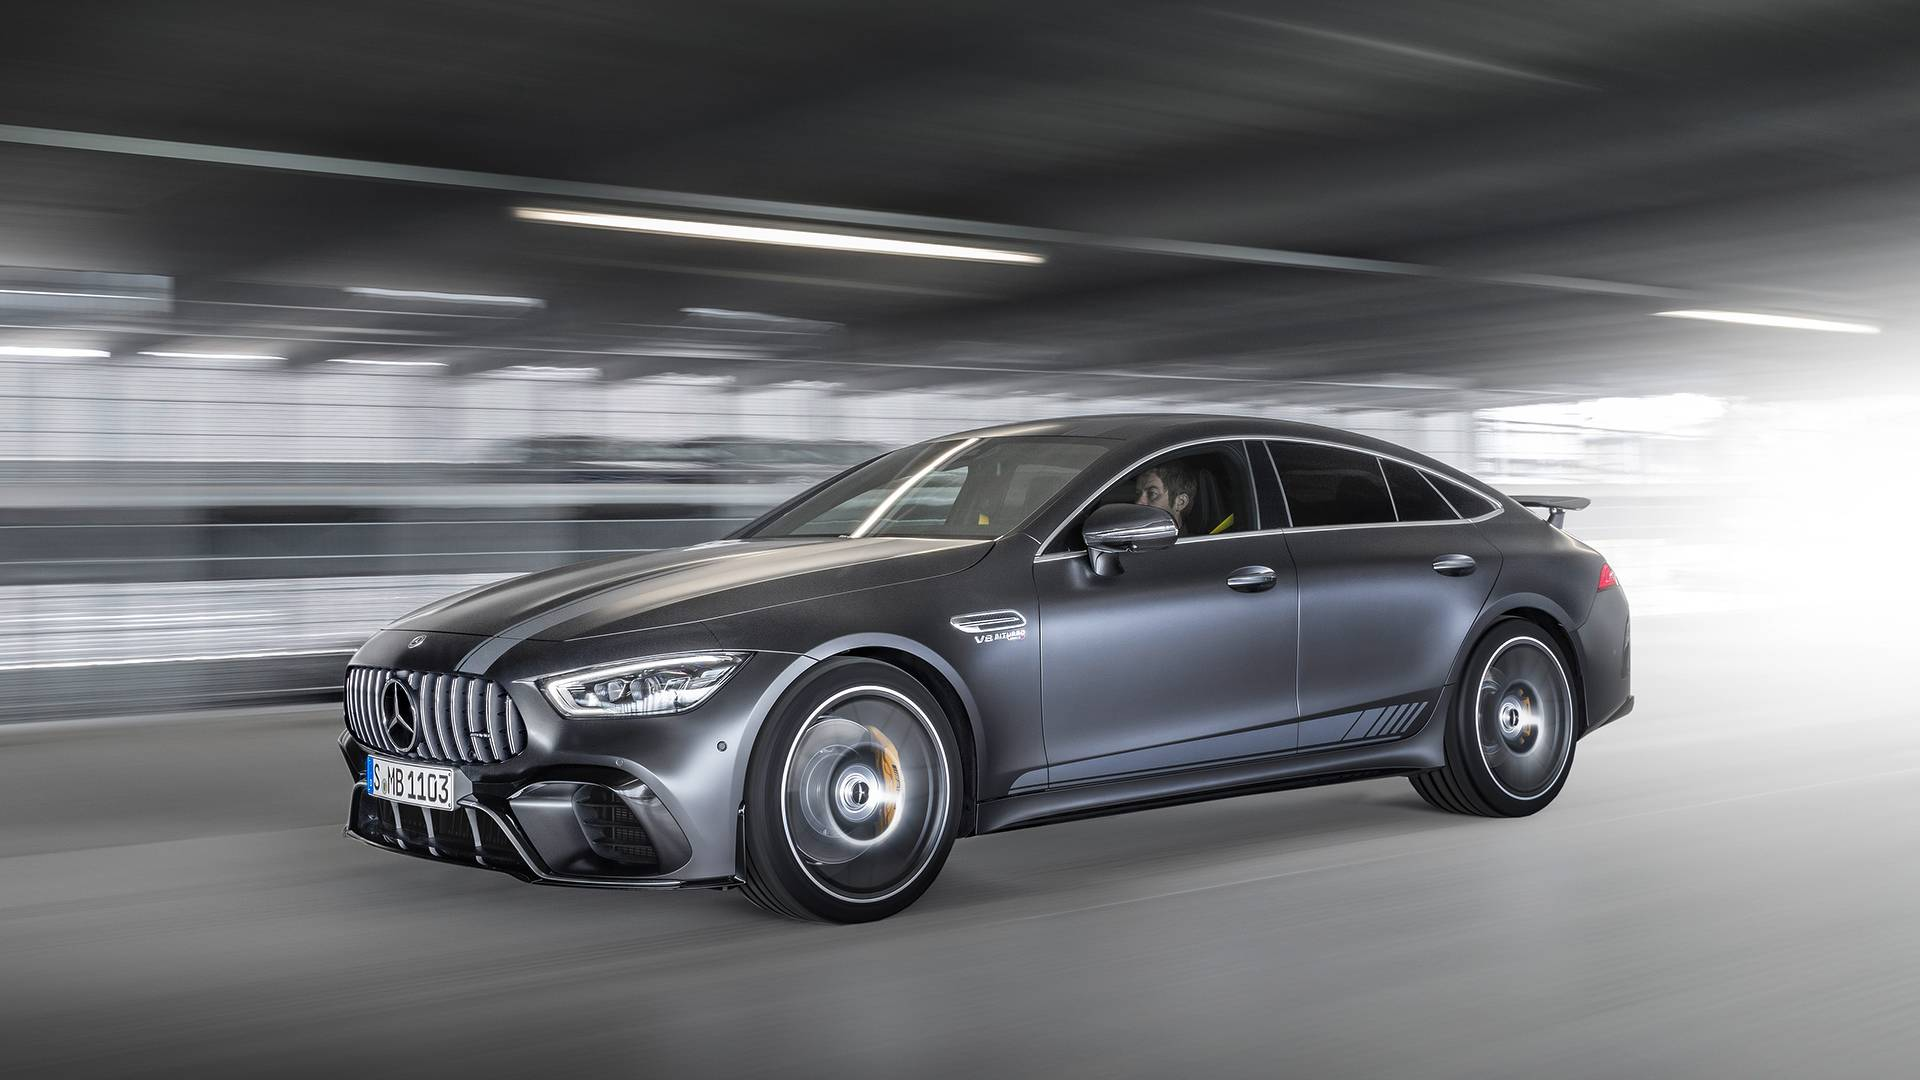 Mercedes Amg Gt 63 S Edition 1 Is Way More Expensive Than An S63